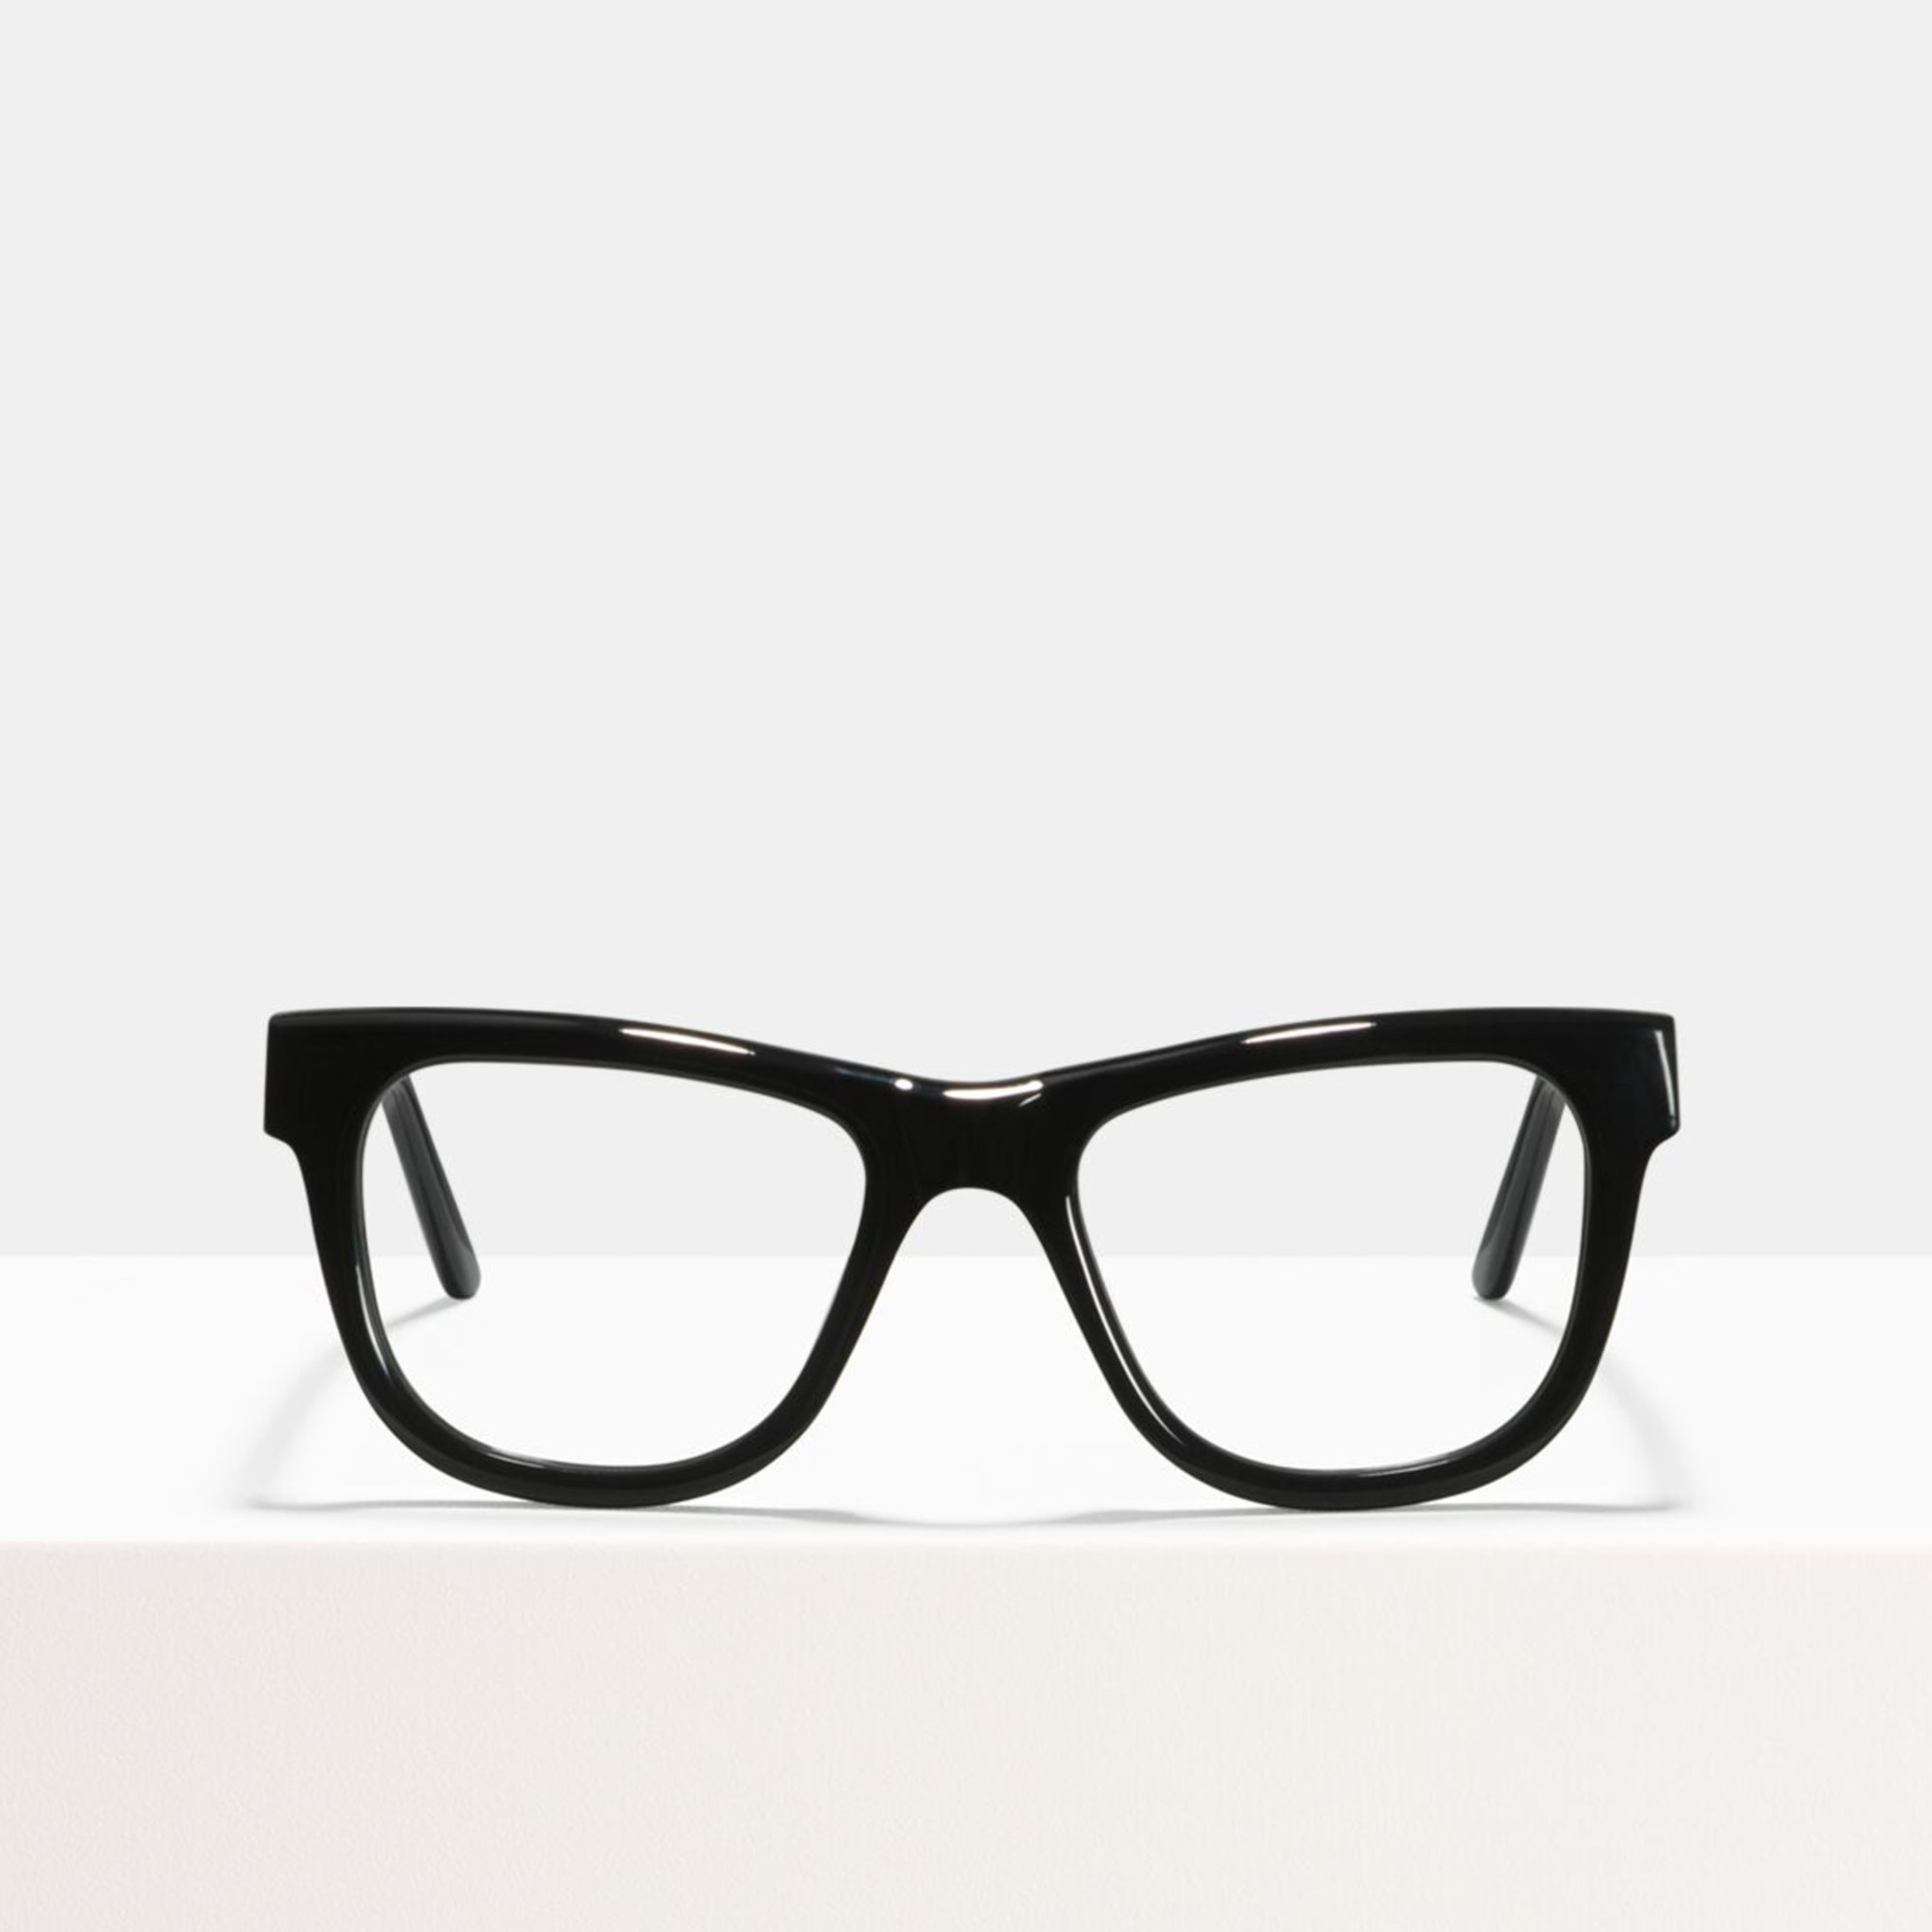 Ace & Tate Glasses | rectangulaire acétate in Noir